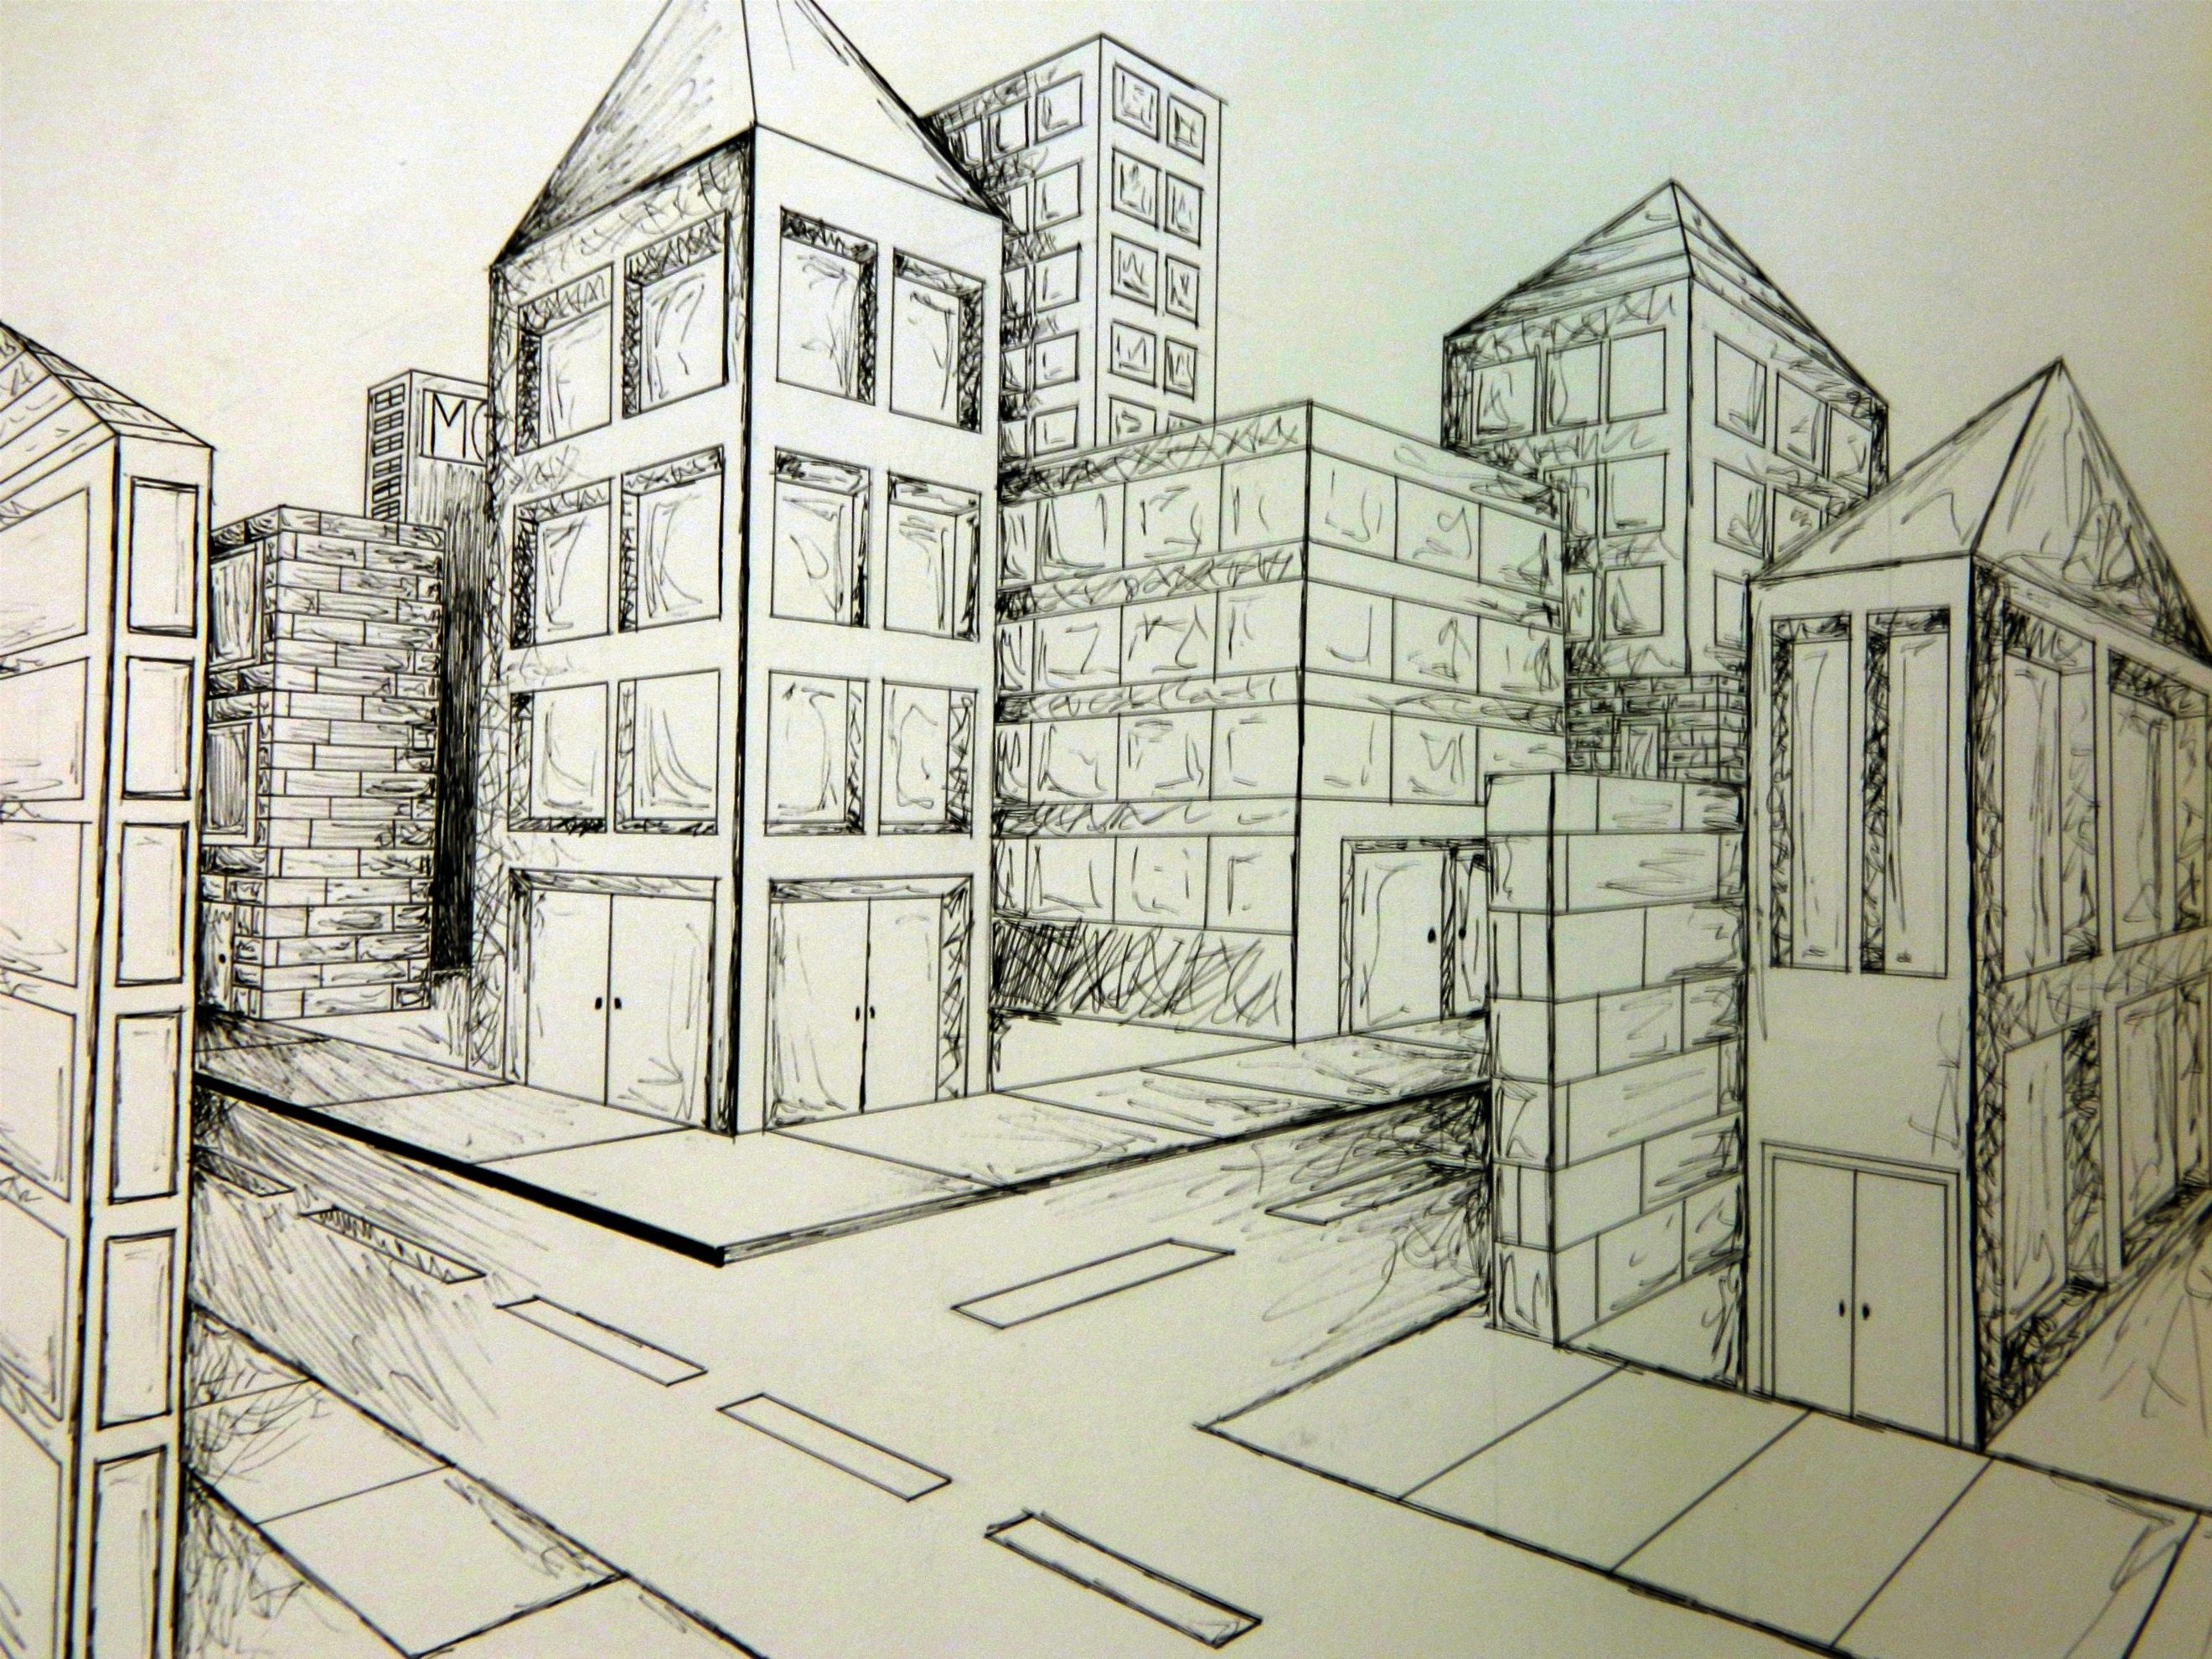 2640x1980 2 Point Perspective City Art Perspective, City